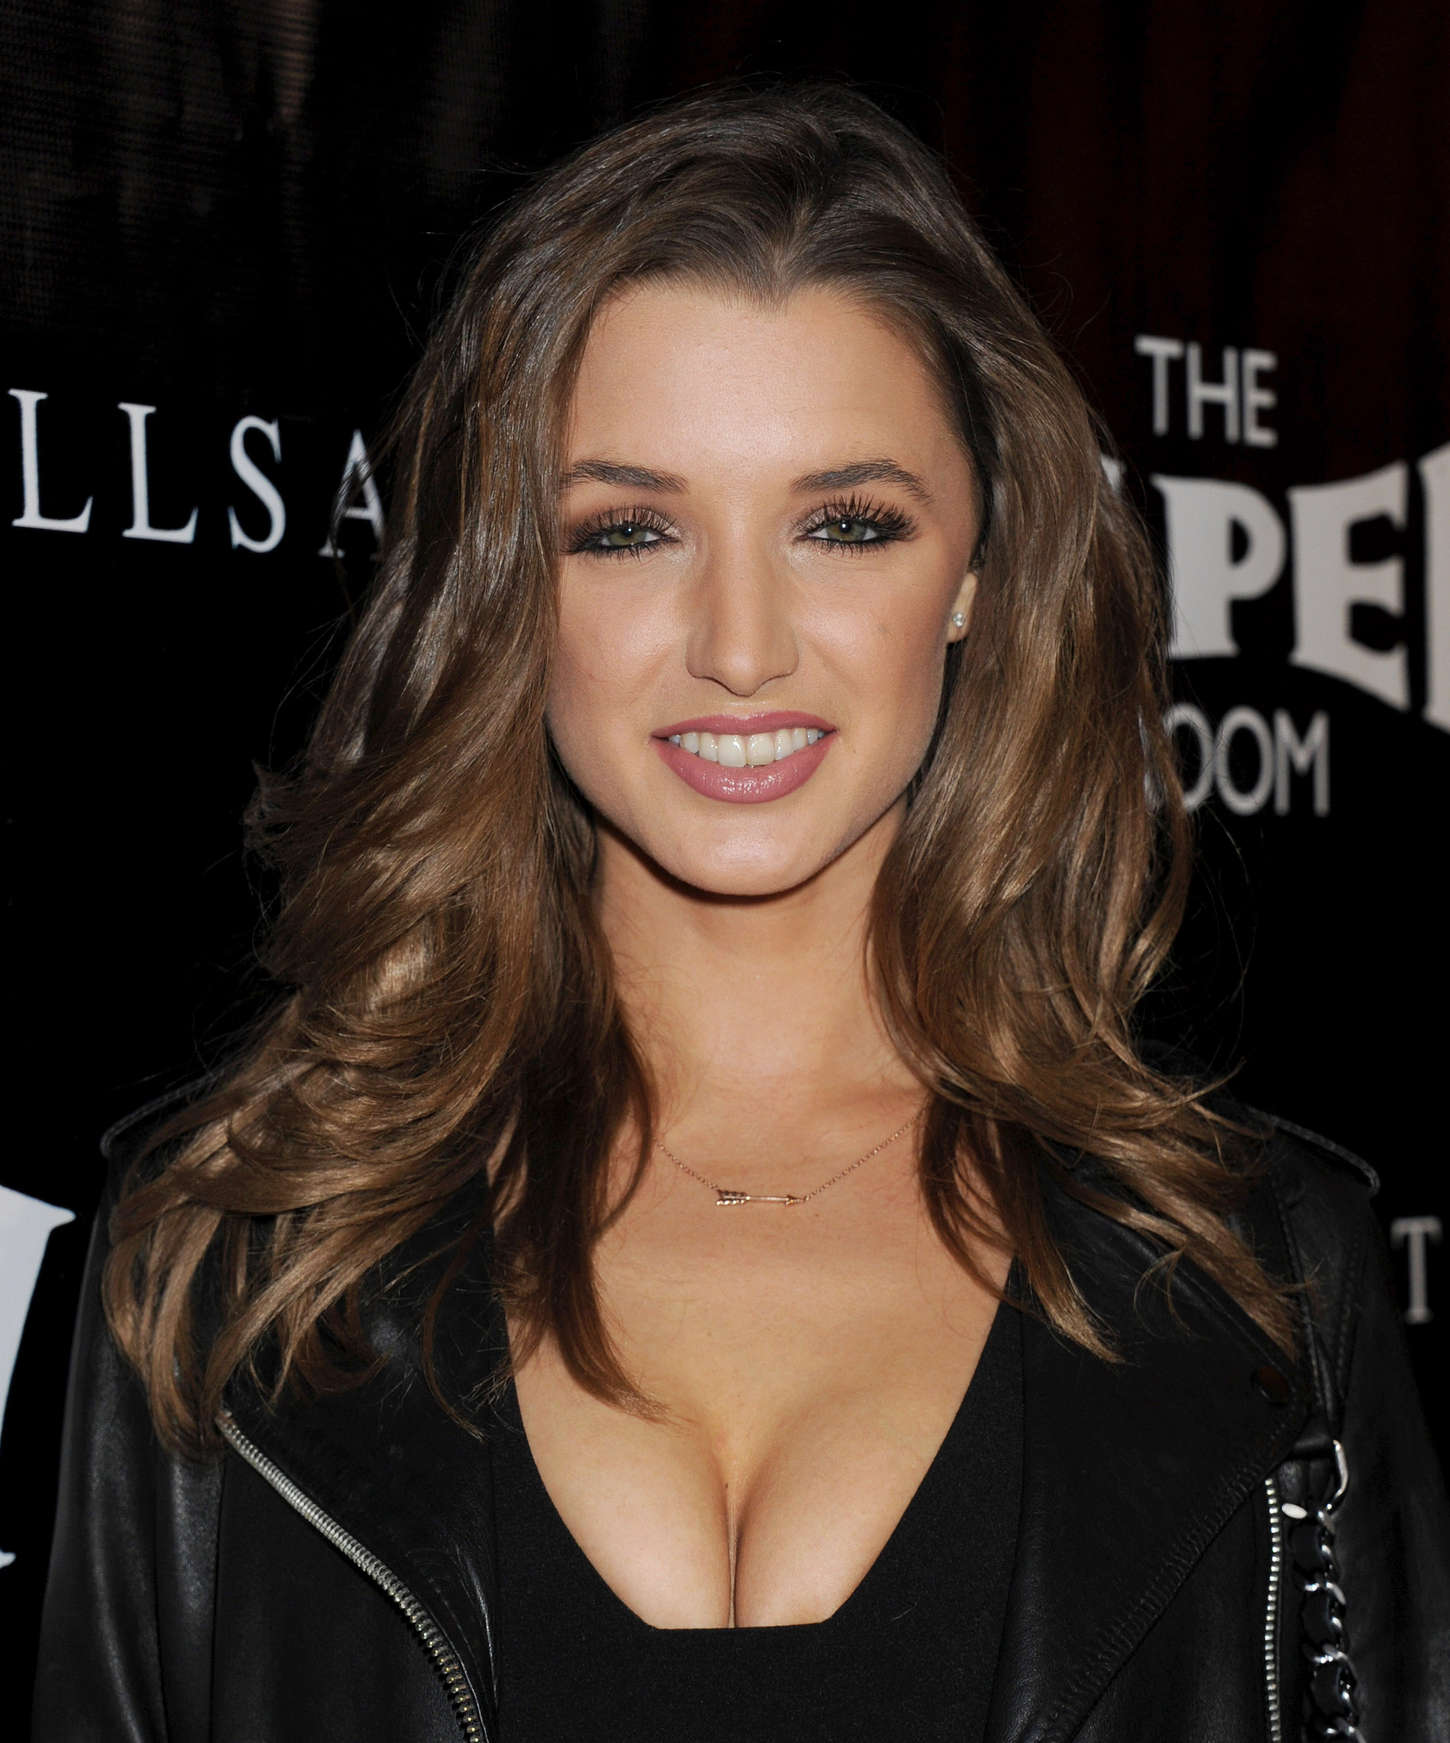 Alyssa Arce The Official Viper Room Re-Launch Party in West Hollywood